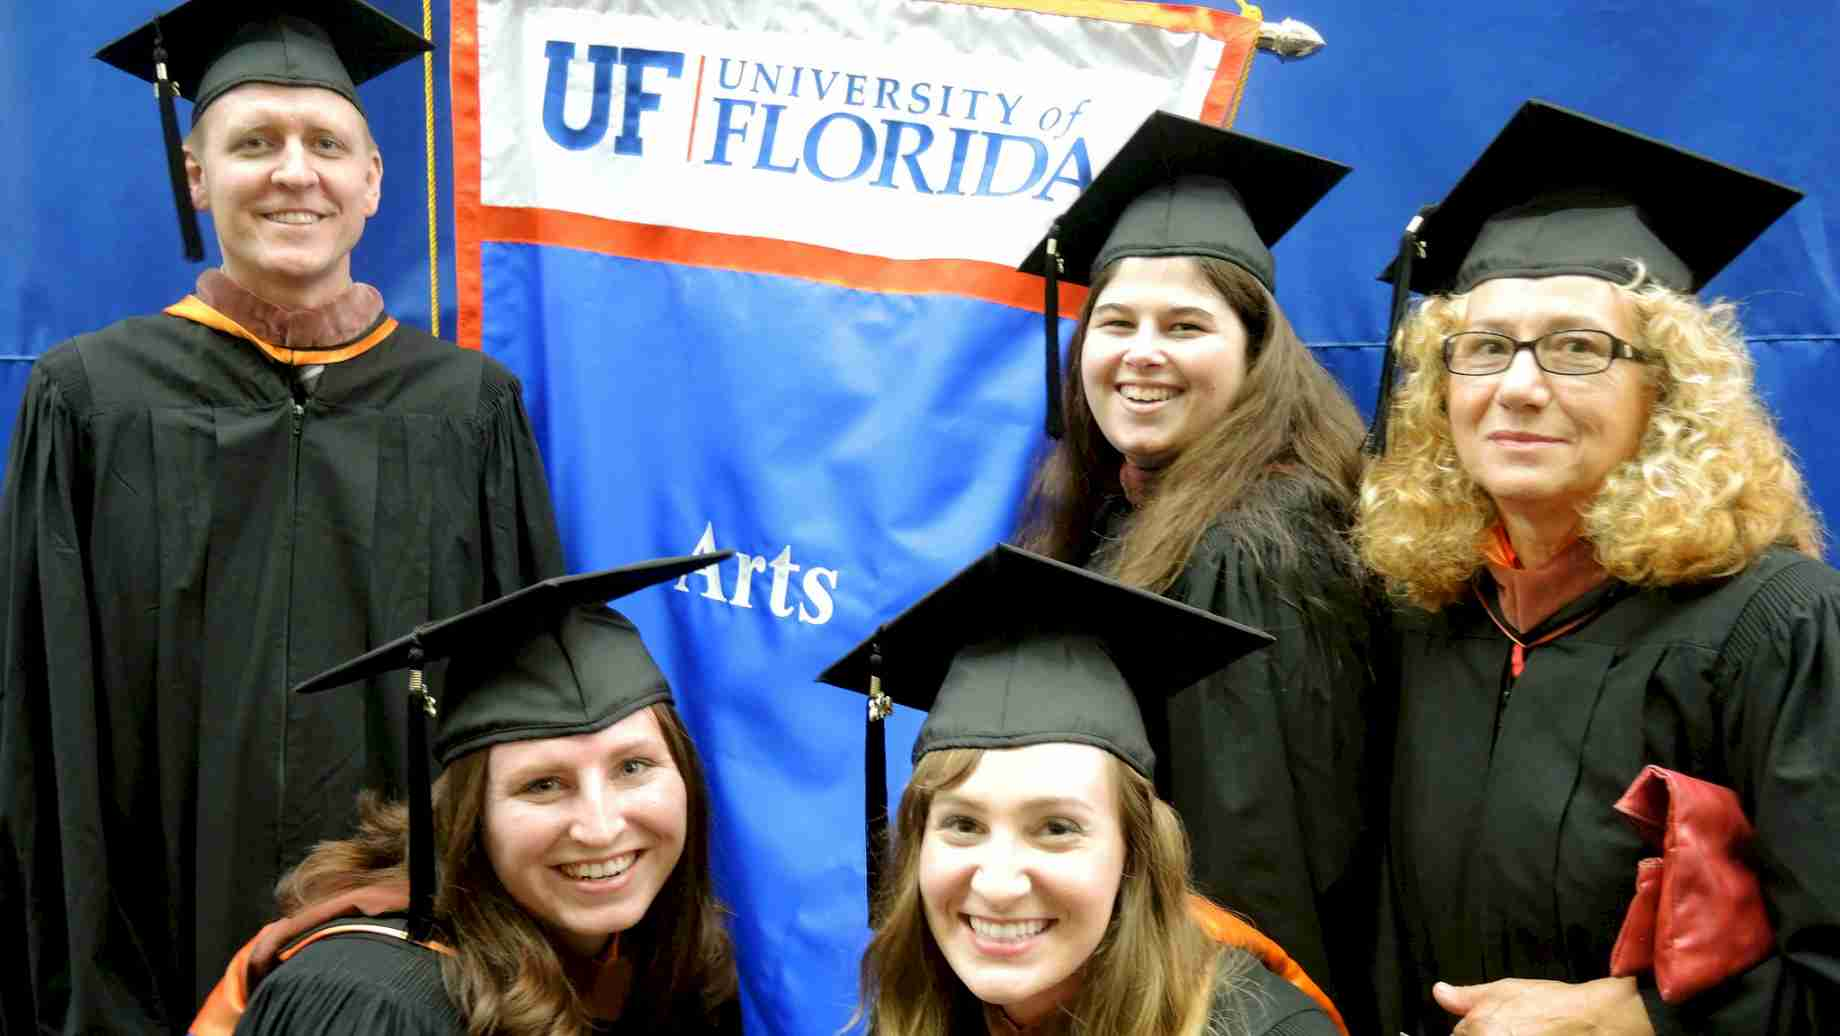 Some of our graduates from the Online MA program in art education participating in commencement activities on campus.